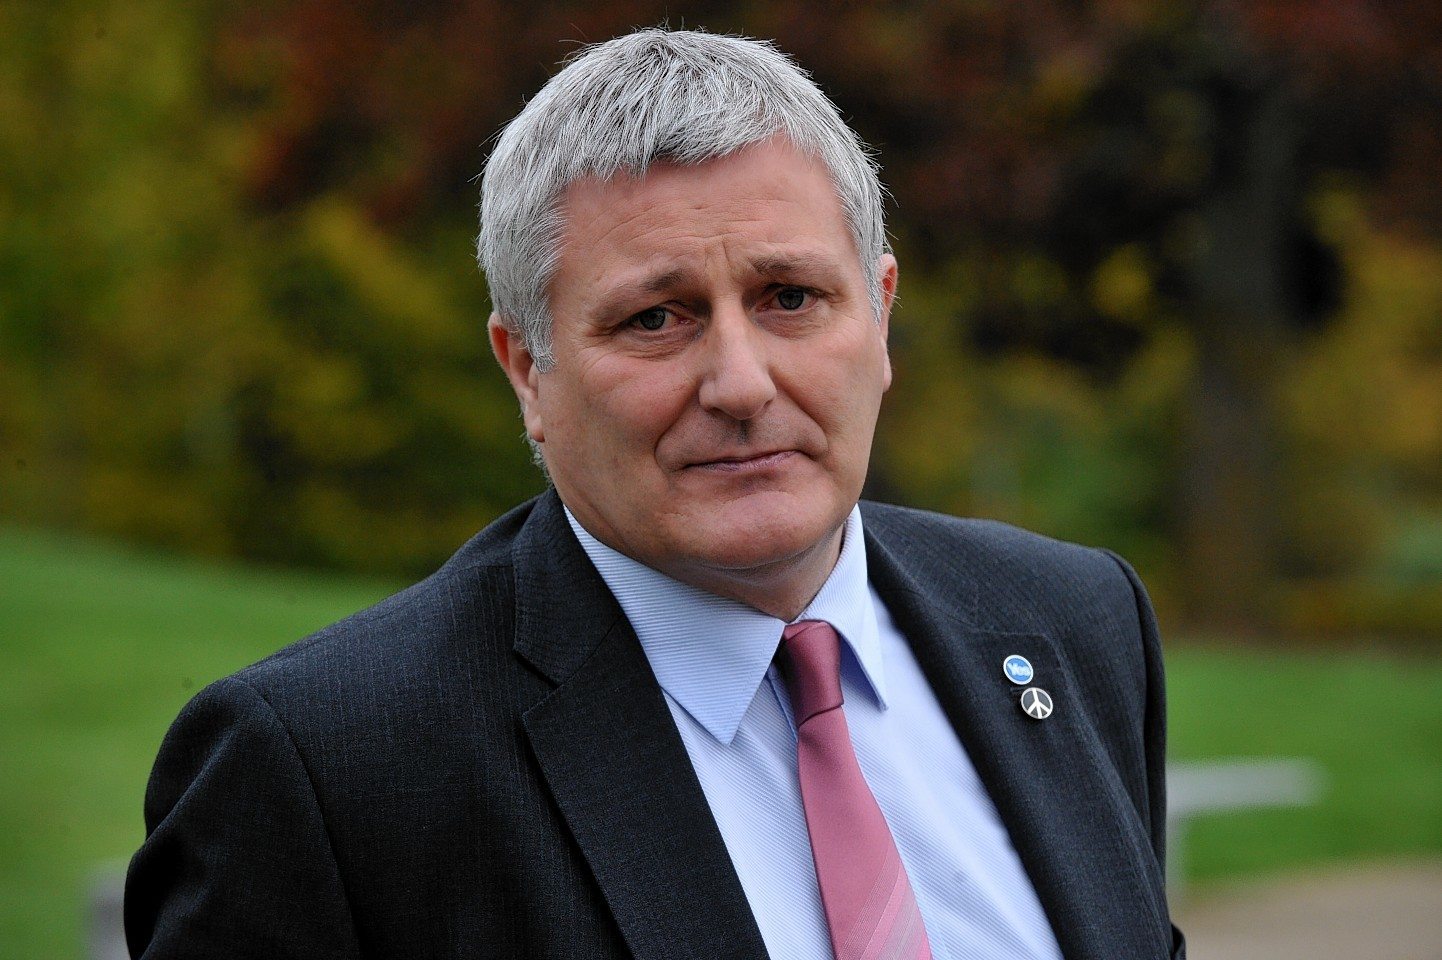 Highland MSP John Finnie